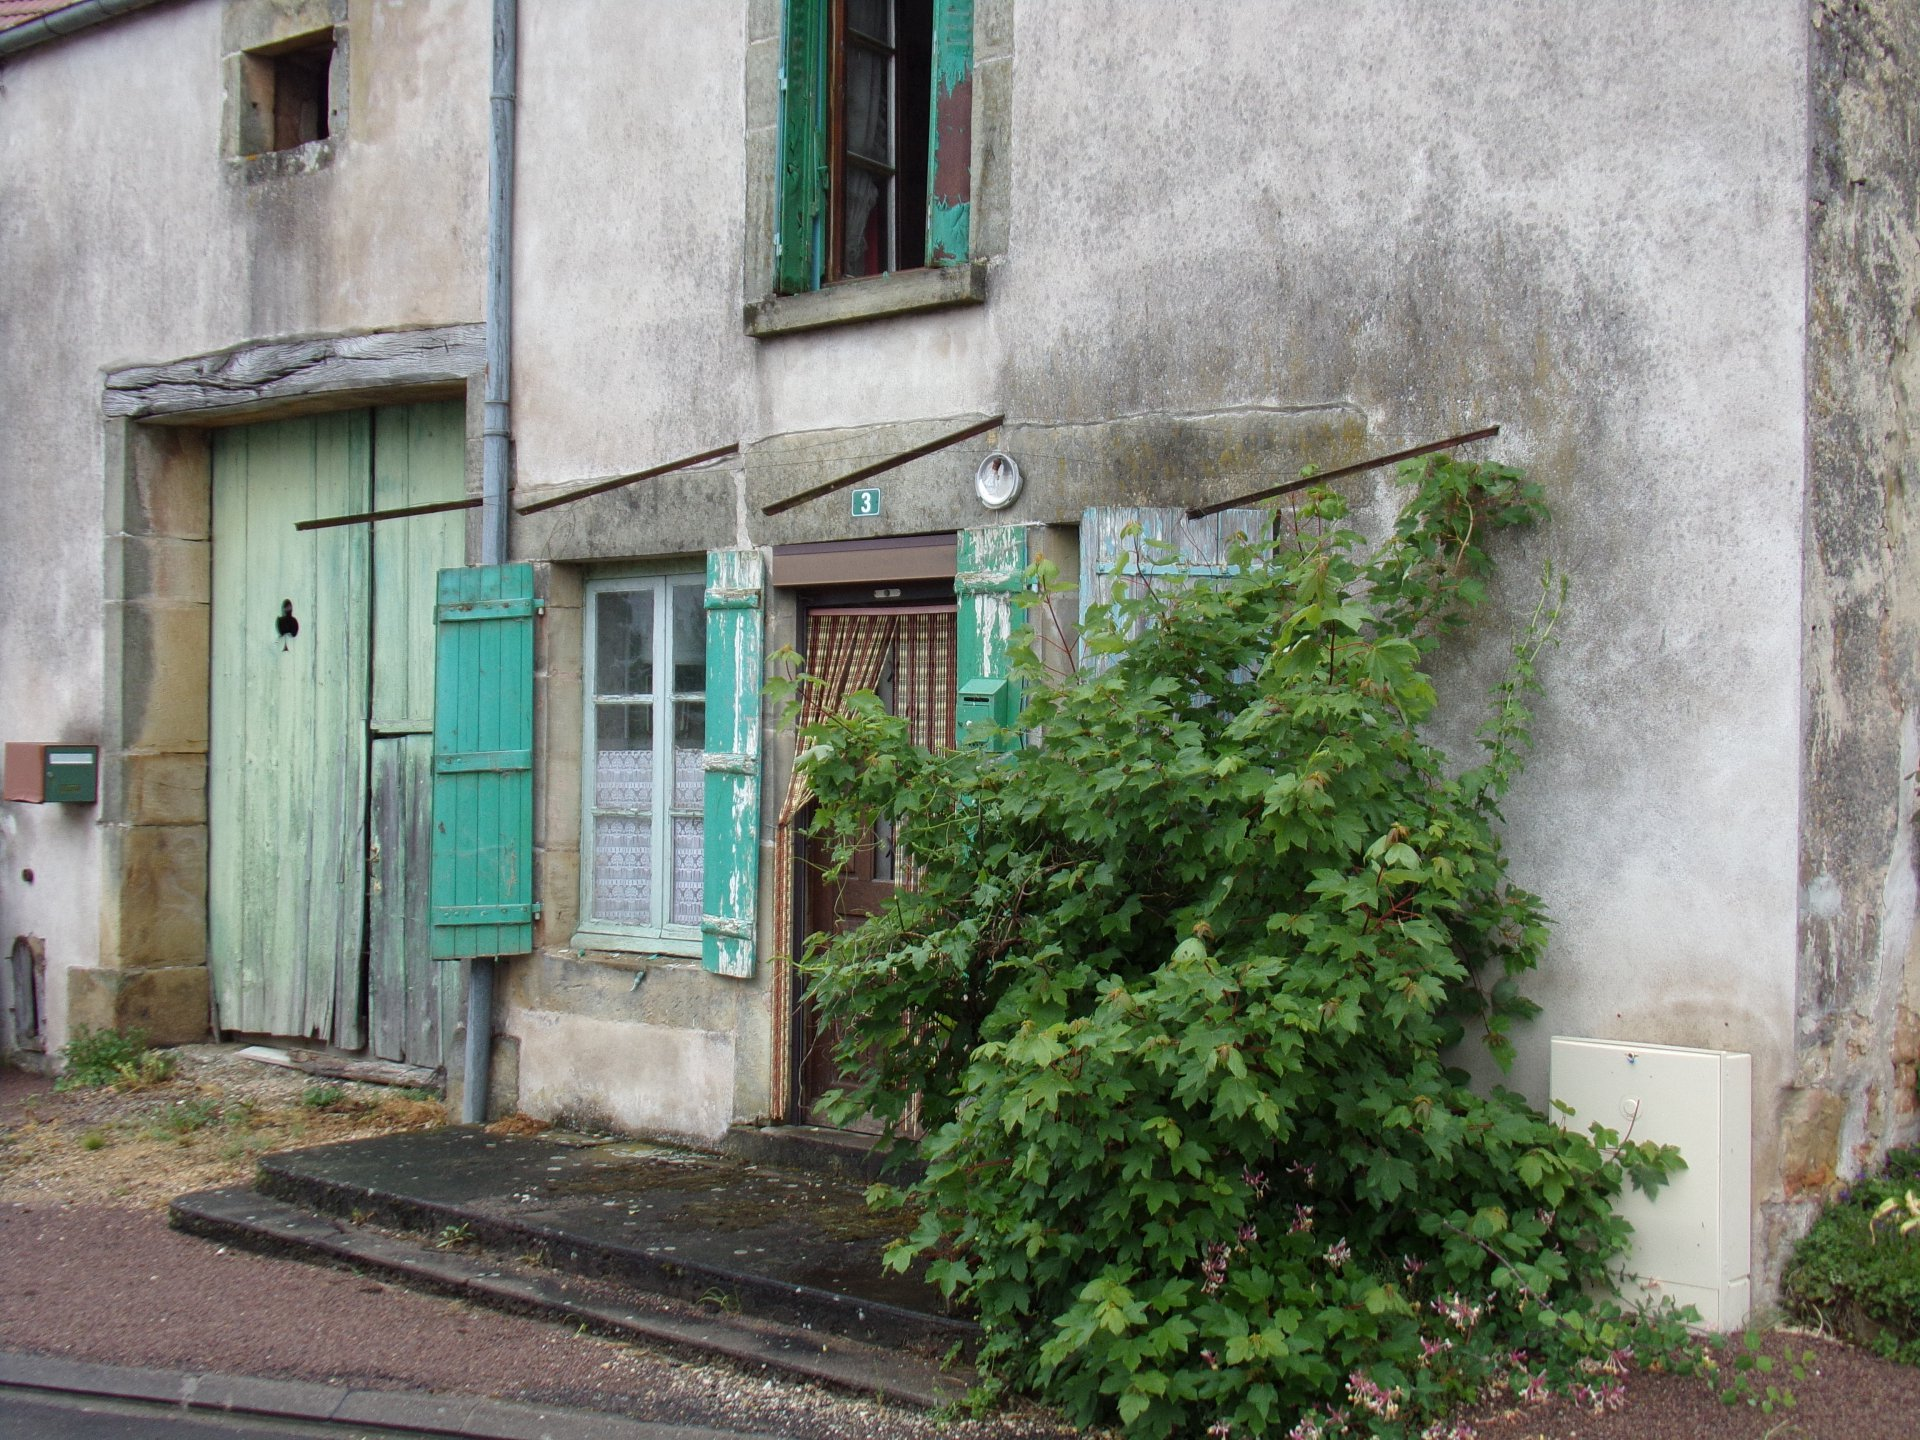 Sold / Property for sale in France - Haute Marne.